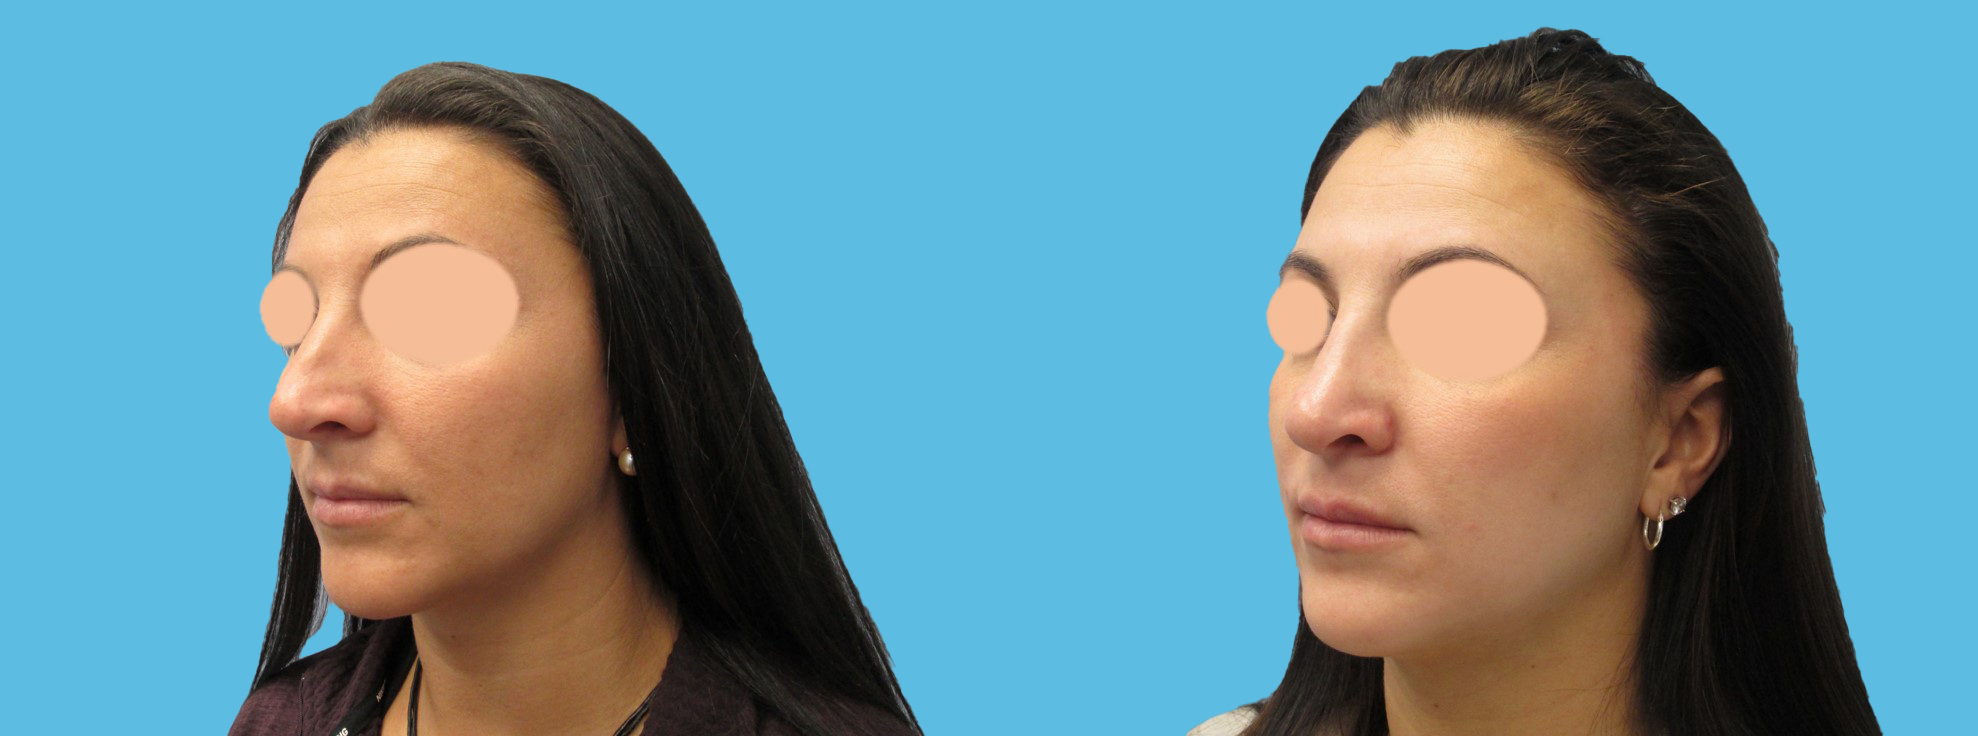 1 year rhinoplasty (severely crooked nose)